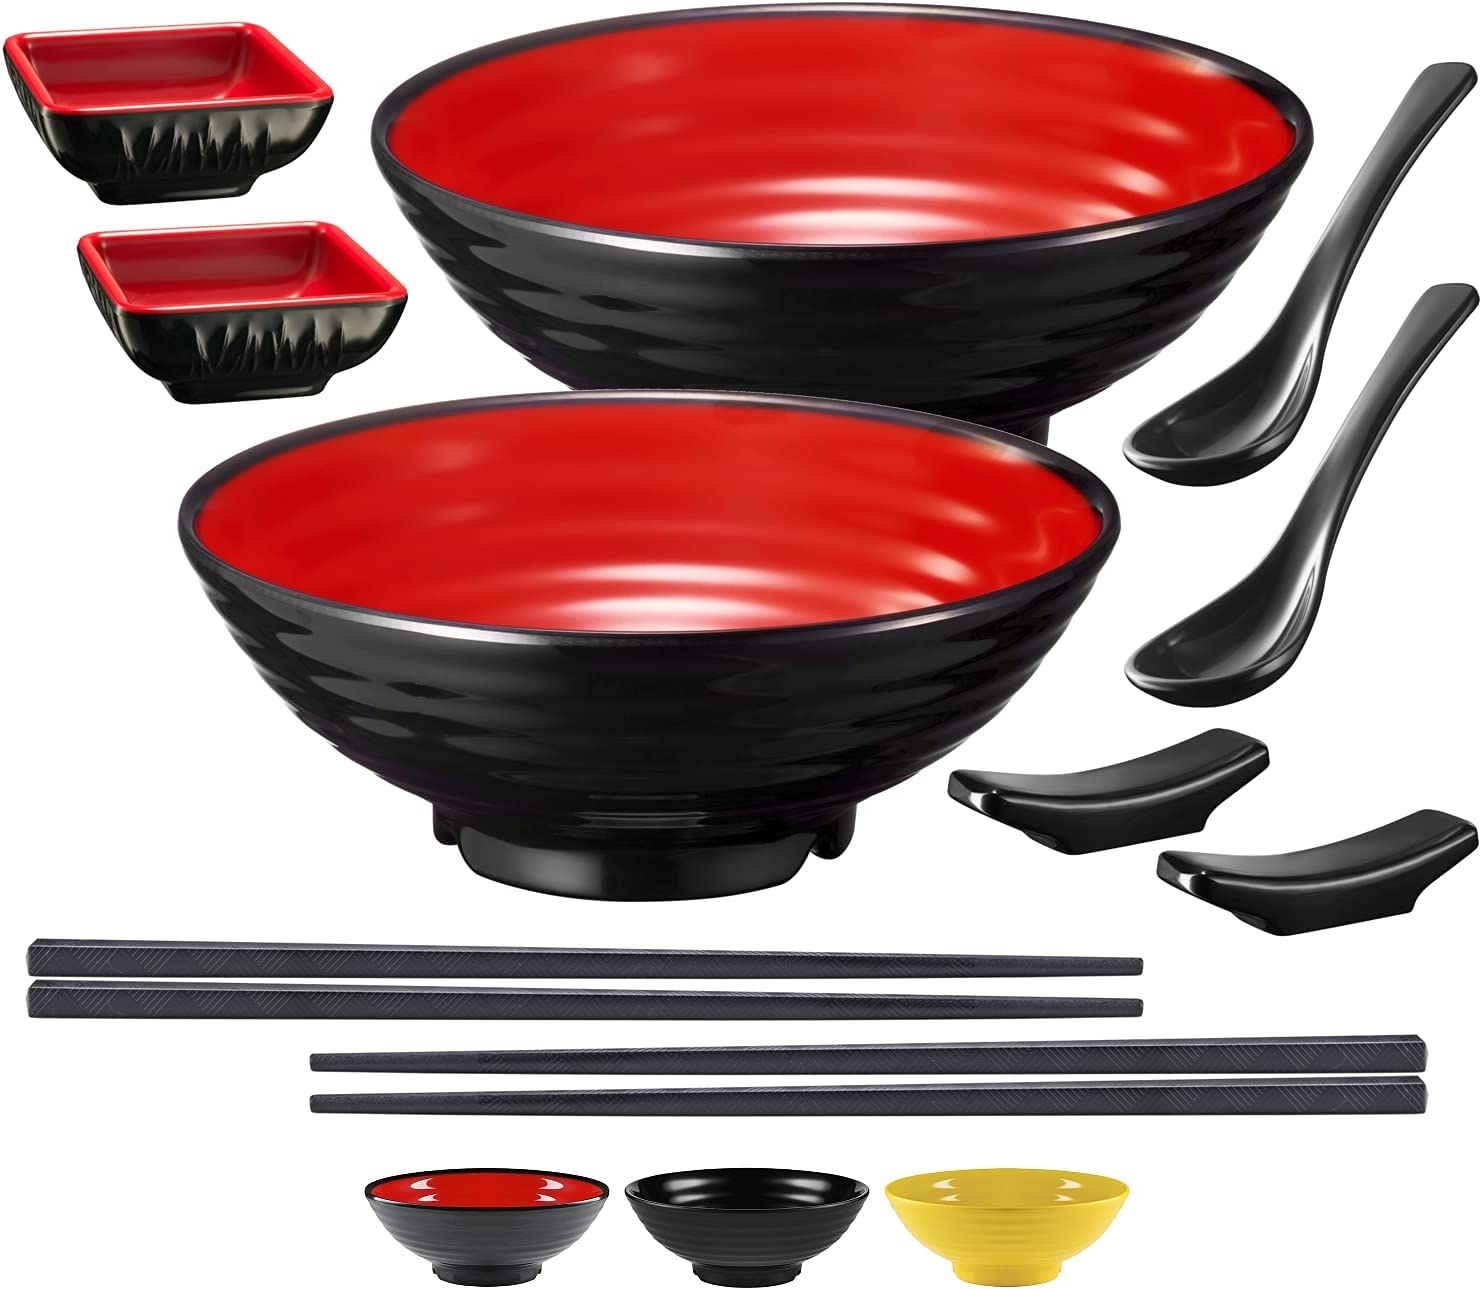 Unbreakable Ramen Bowl Excellent New sales Set with Chopsticks large and Ja Spoon: 2